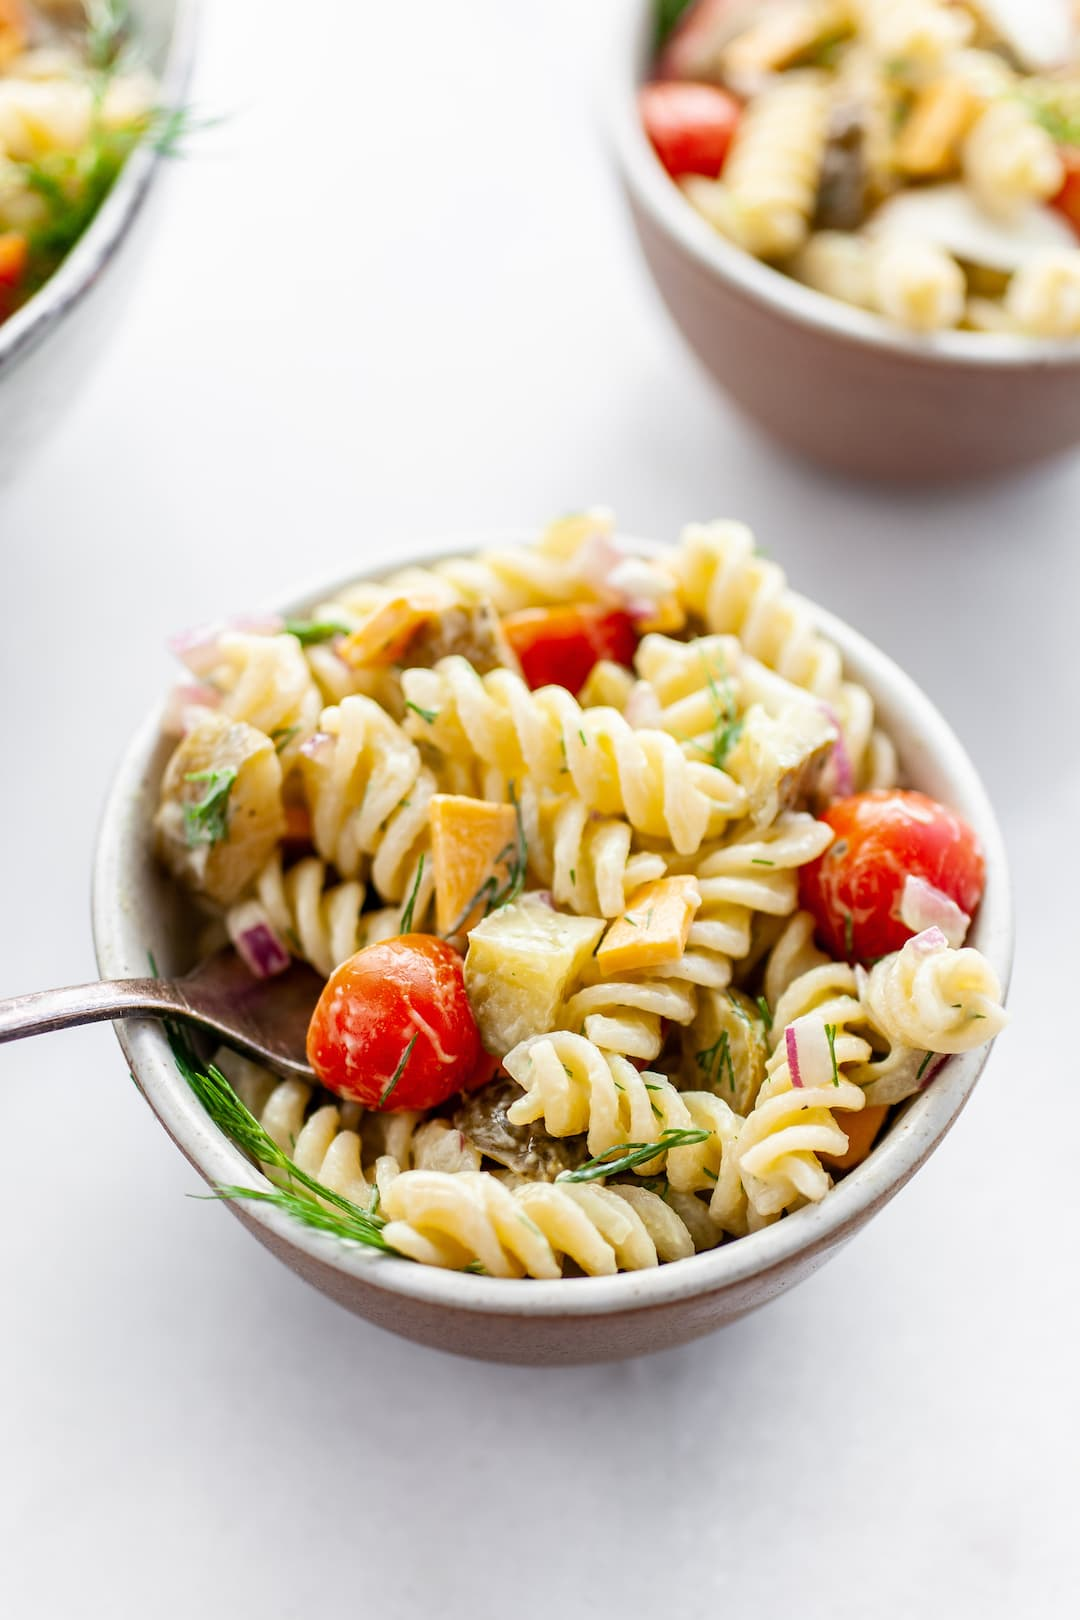 Delicious and Healthy Dill Pickle Pasta Salad